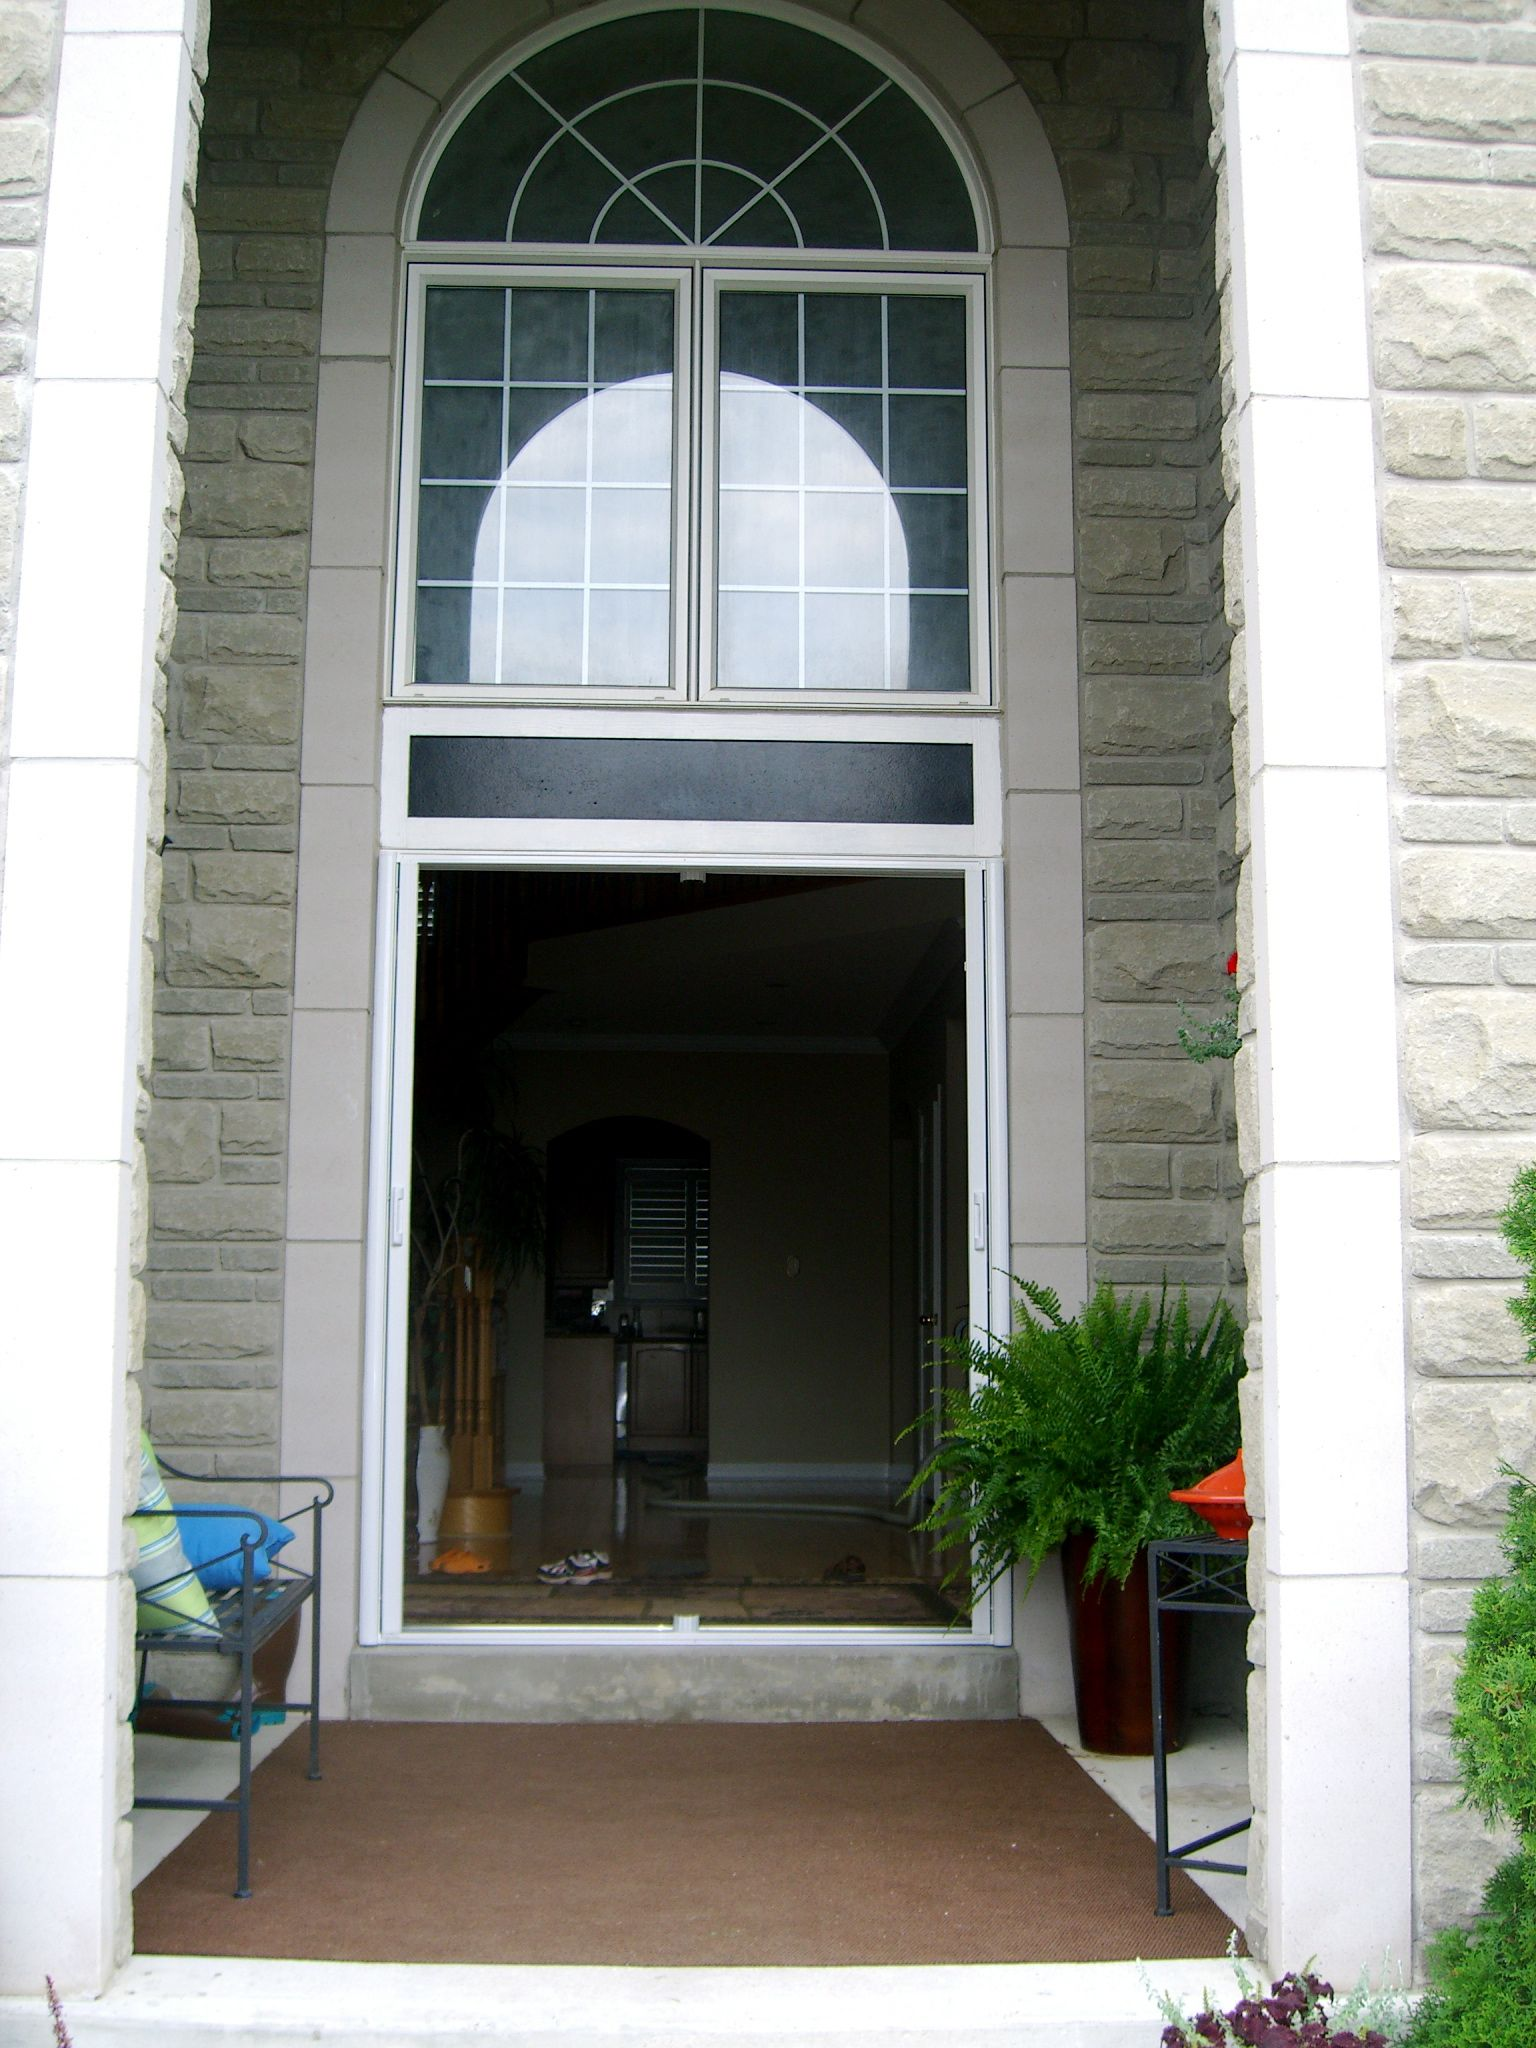 Retractable screen doors with arch above matched with wooden floor before beautiful balcony